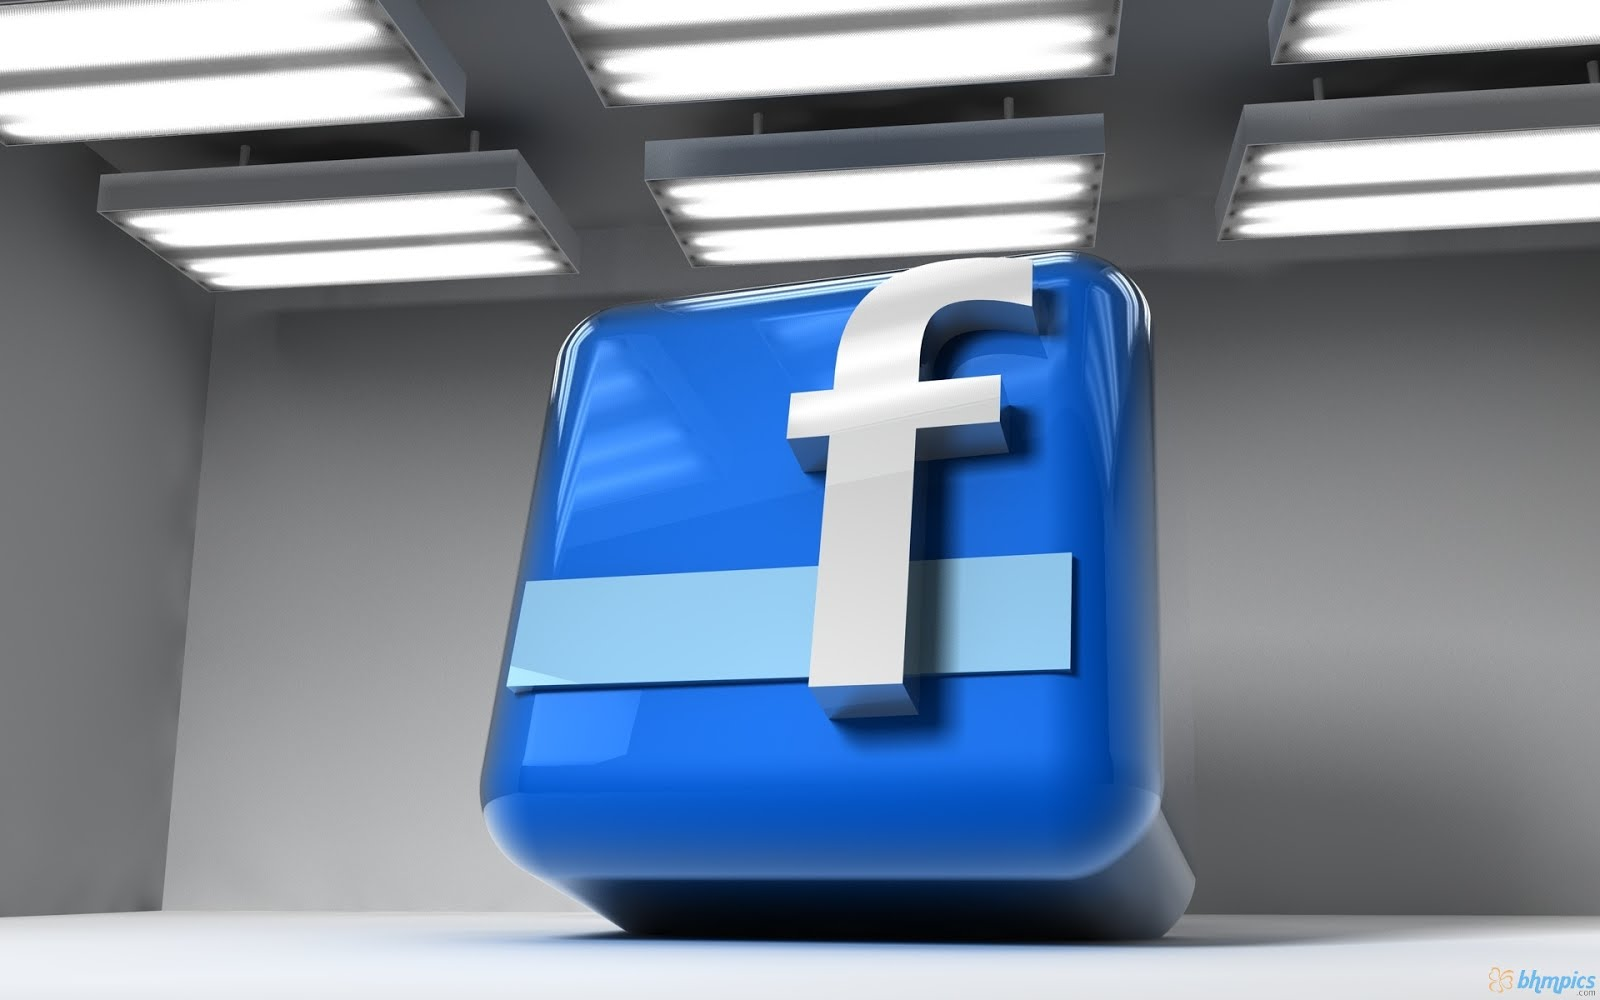 Facebook 3D Logo Hd Desktop Wallpaper 1080p Wallpaper